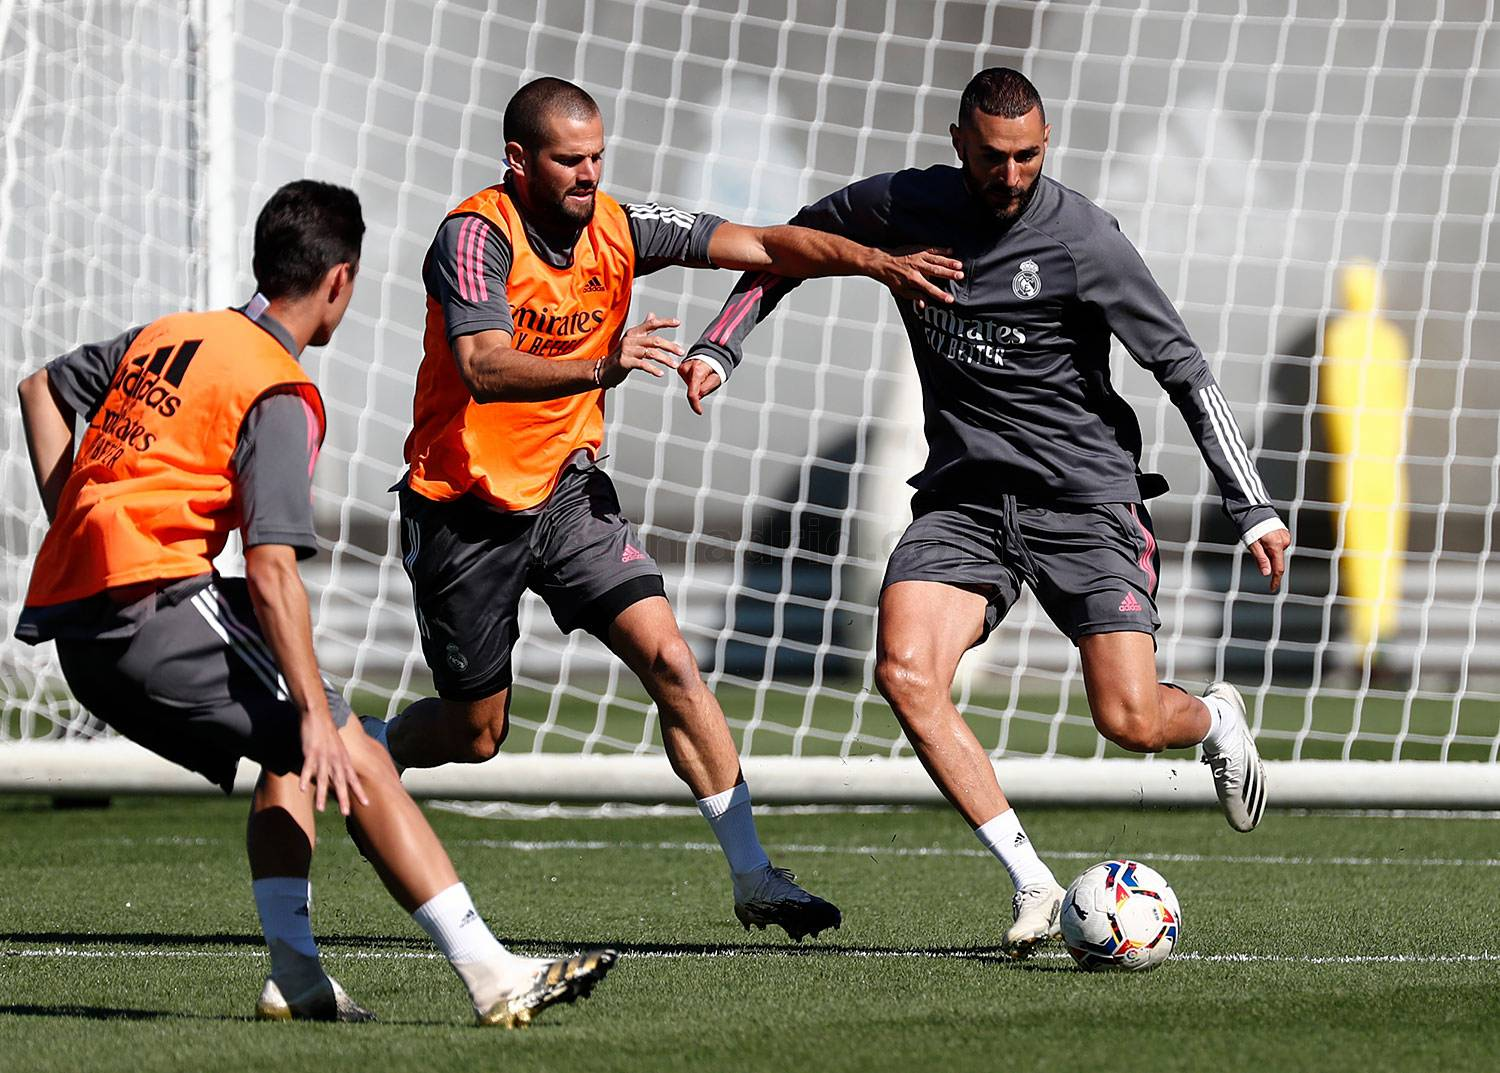 Real Madrid - Entrenamiento del Real Madrid  - 08-09-2020